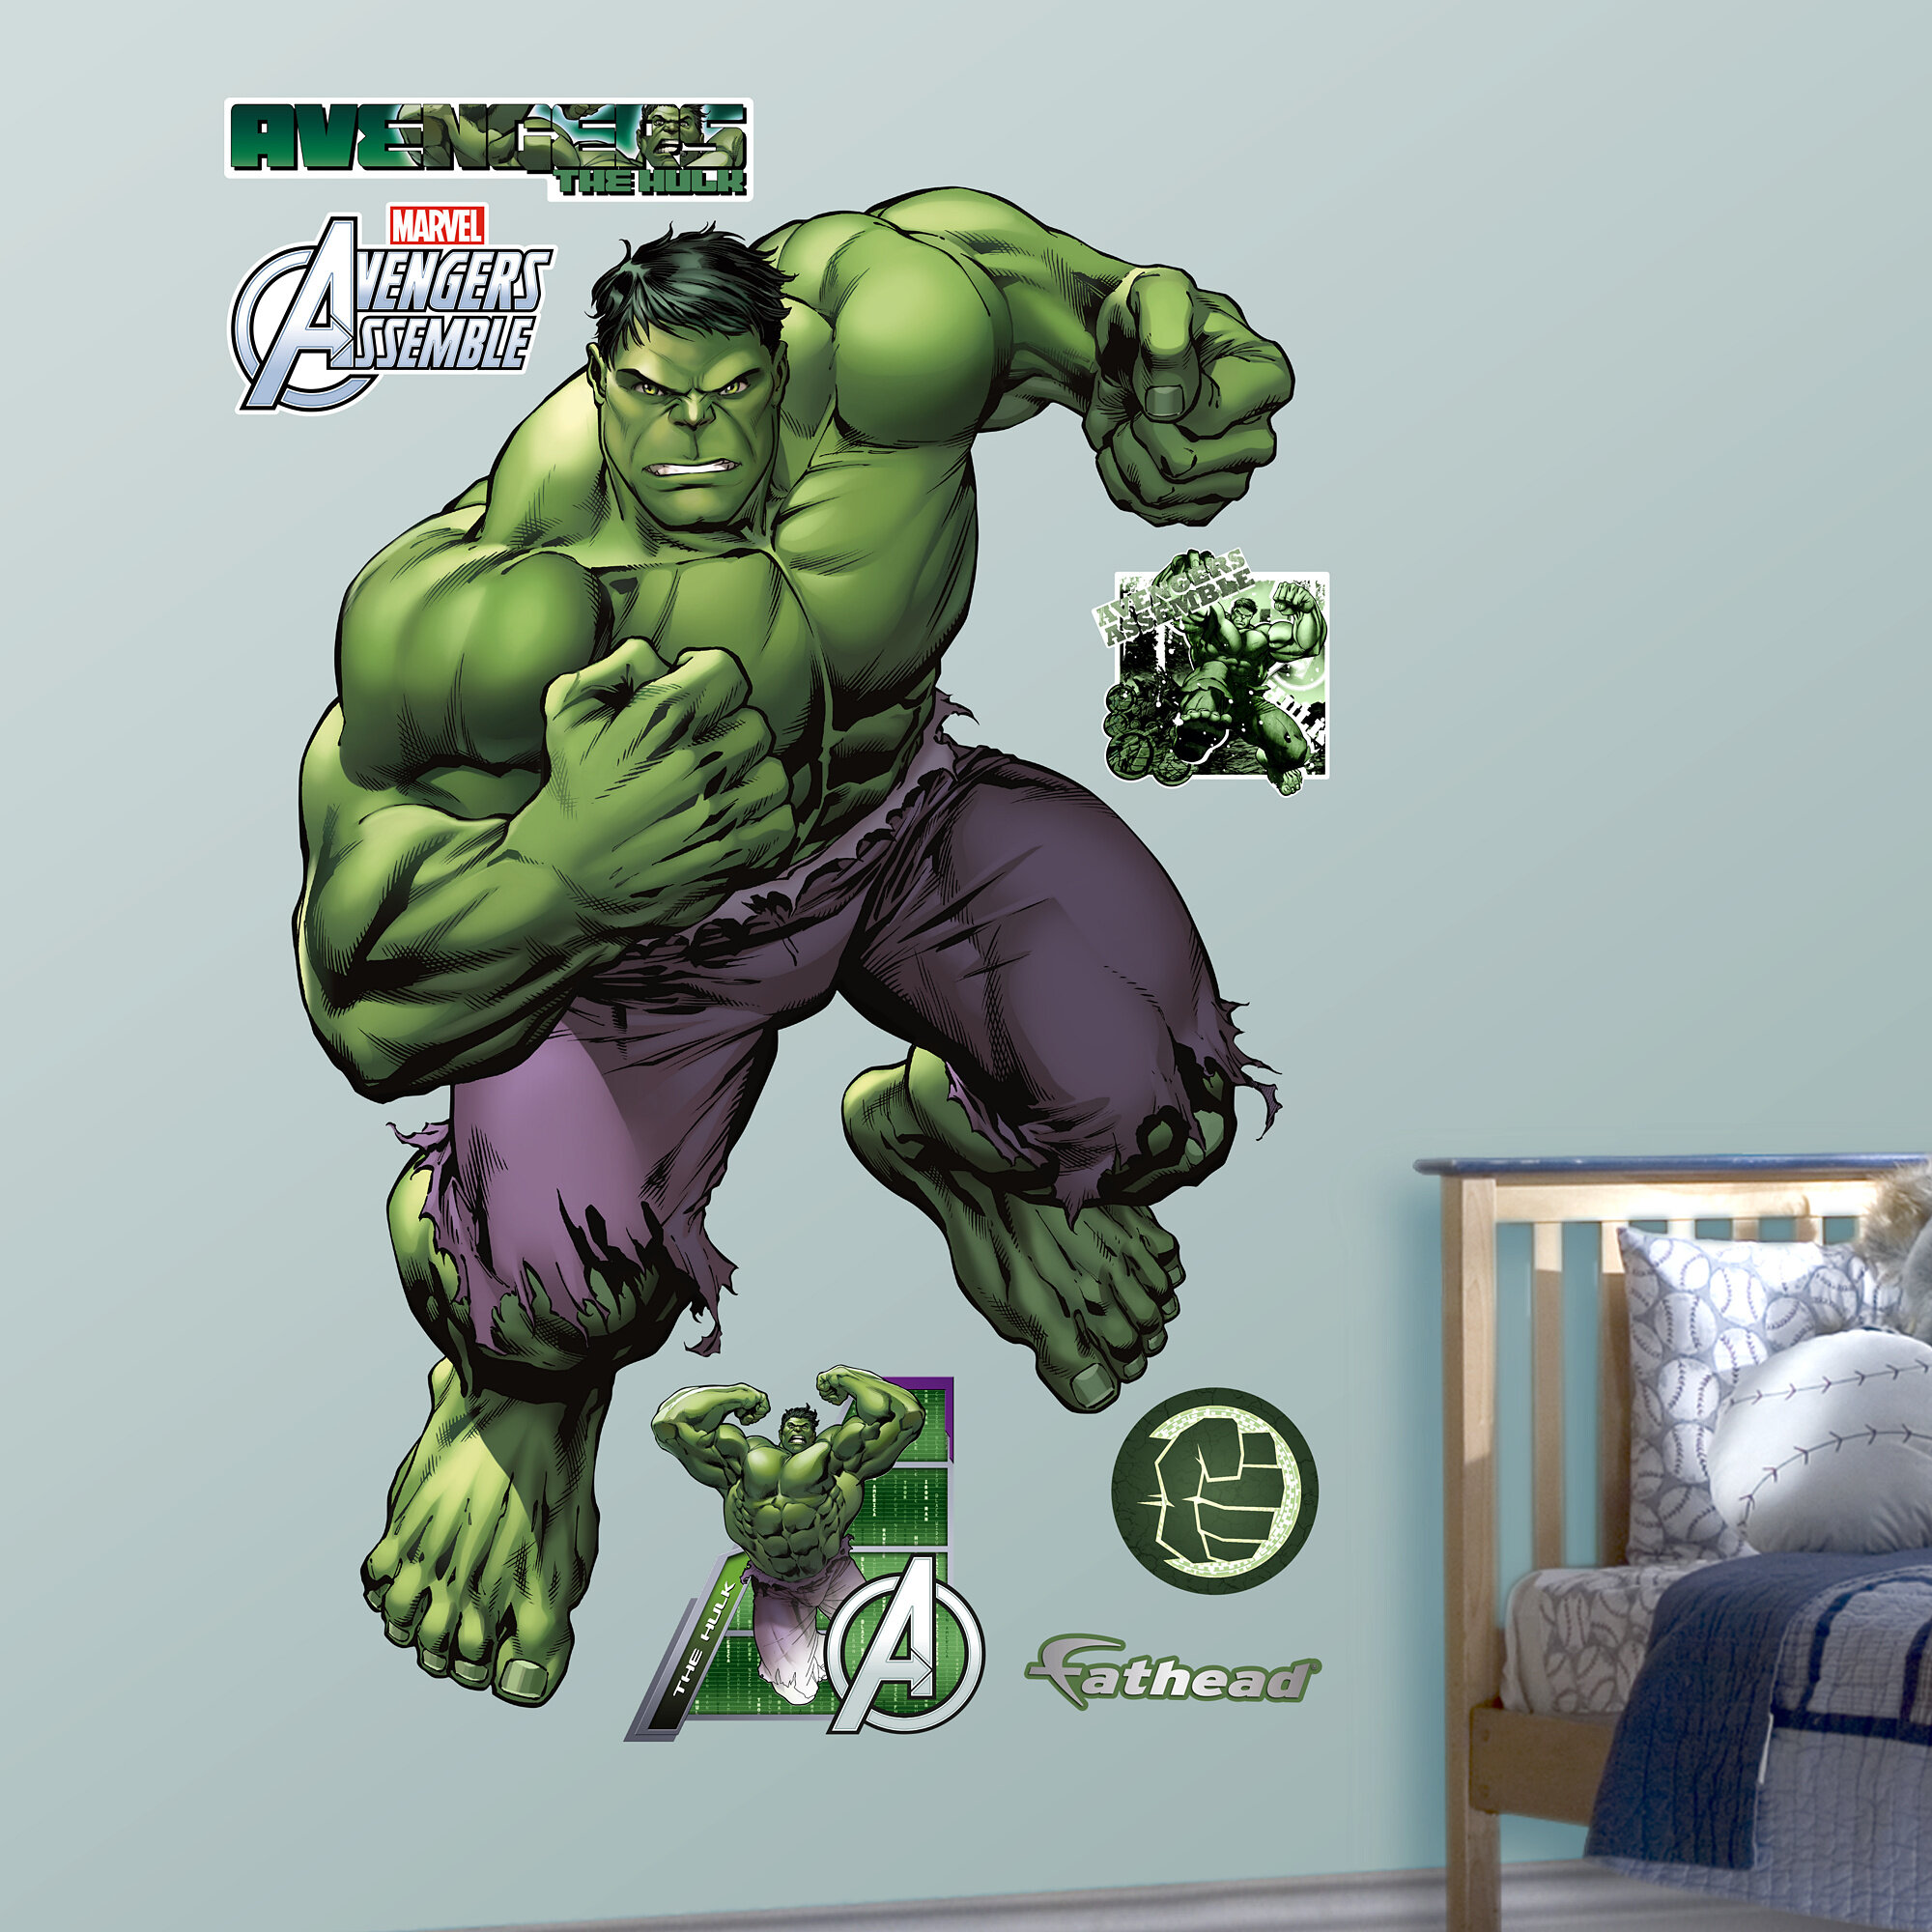 Realbig marvel avengers assemble hulk wall decal